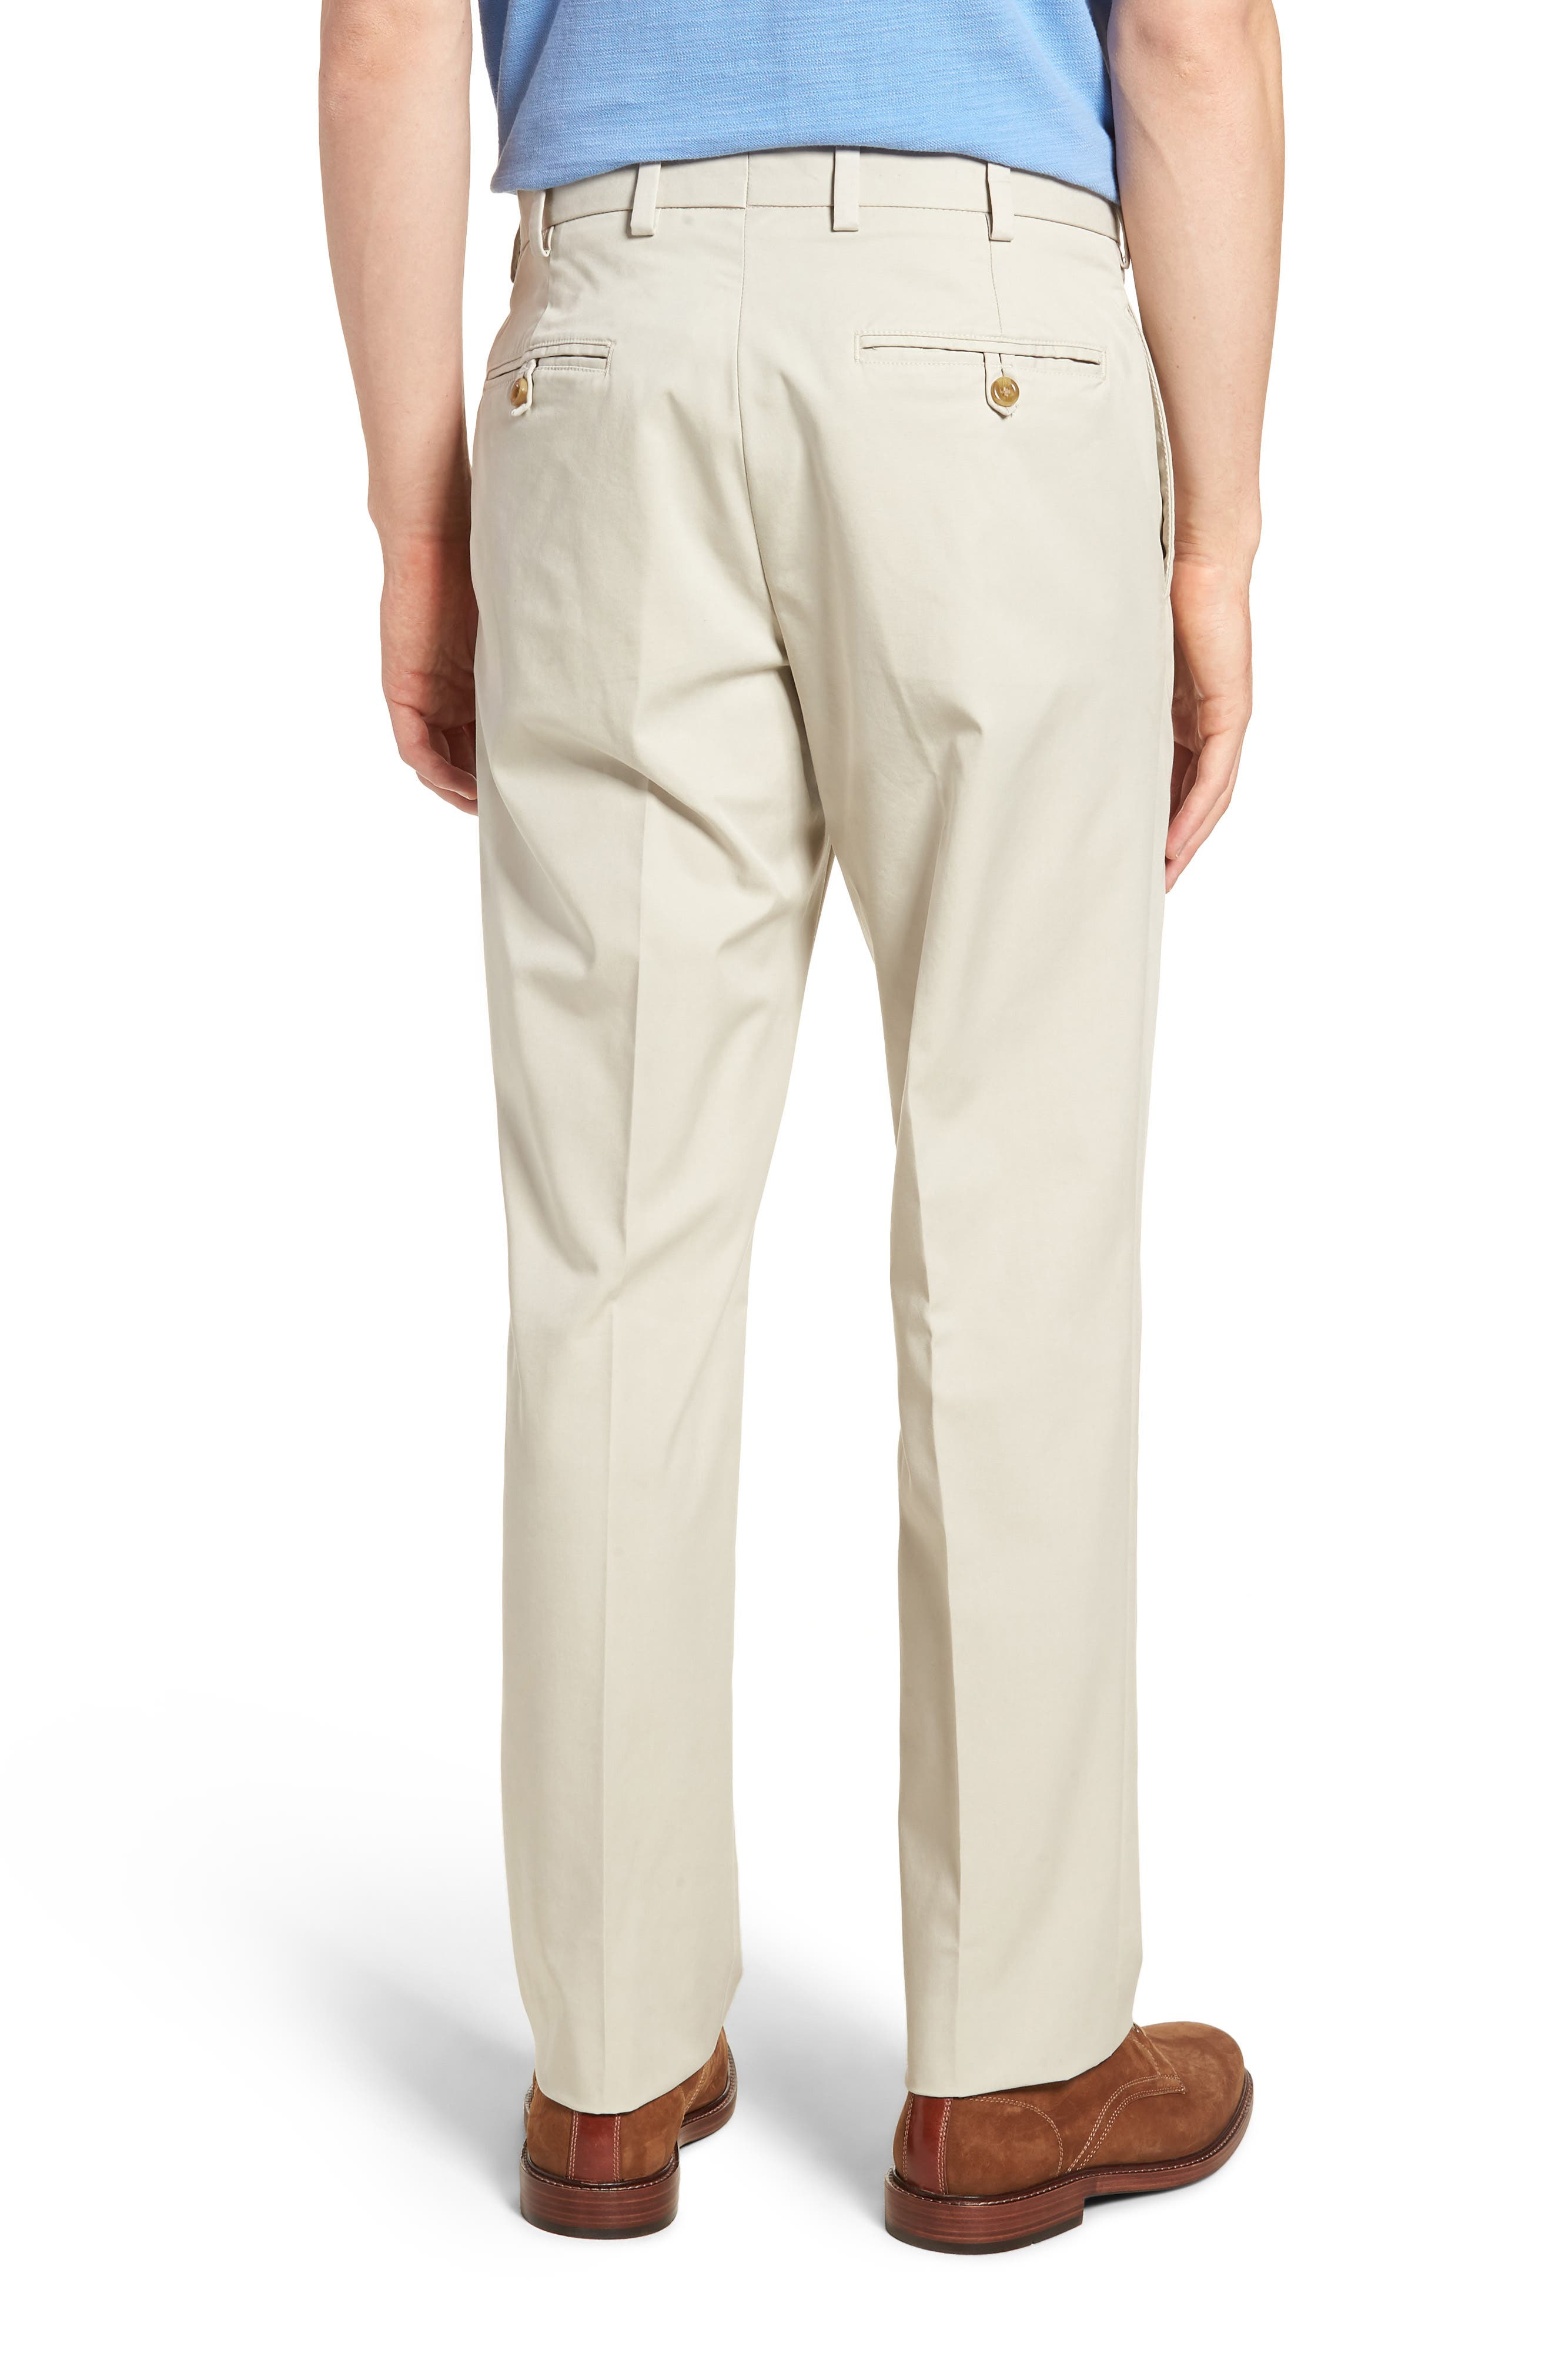 M2 Classic Fit Flat Front Travel Twill Pants,                             Alternate thumbnail 2, color,                             Cement